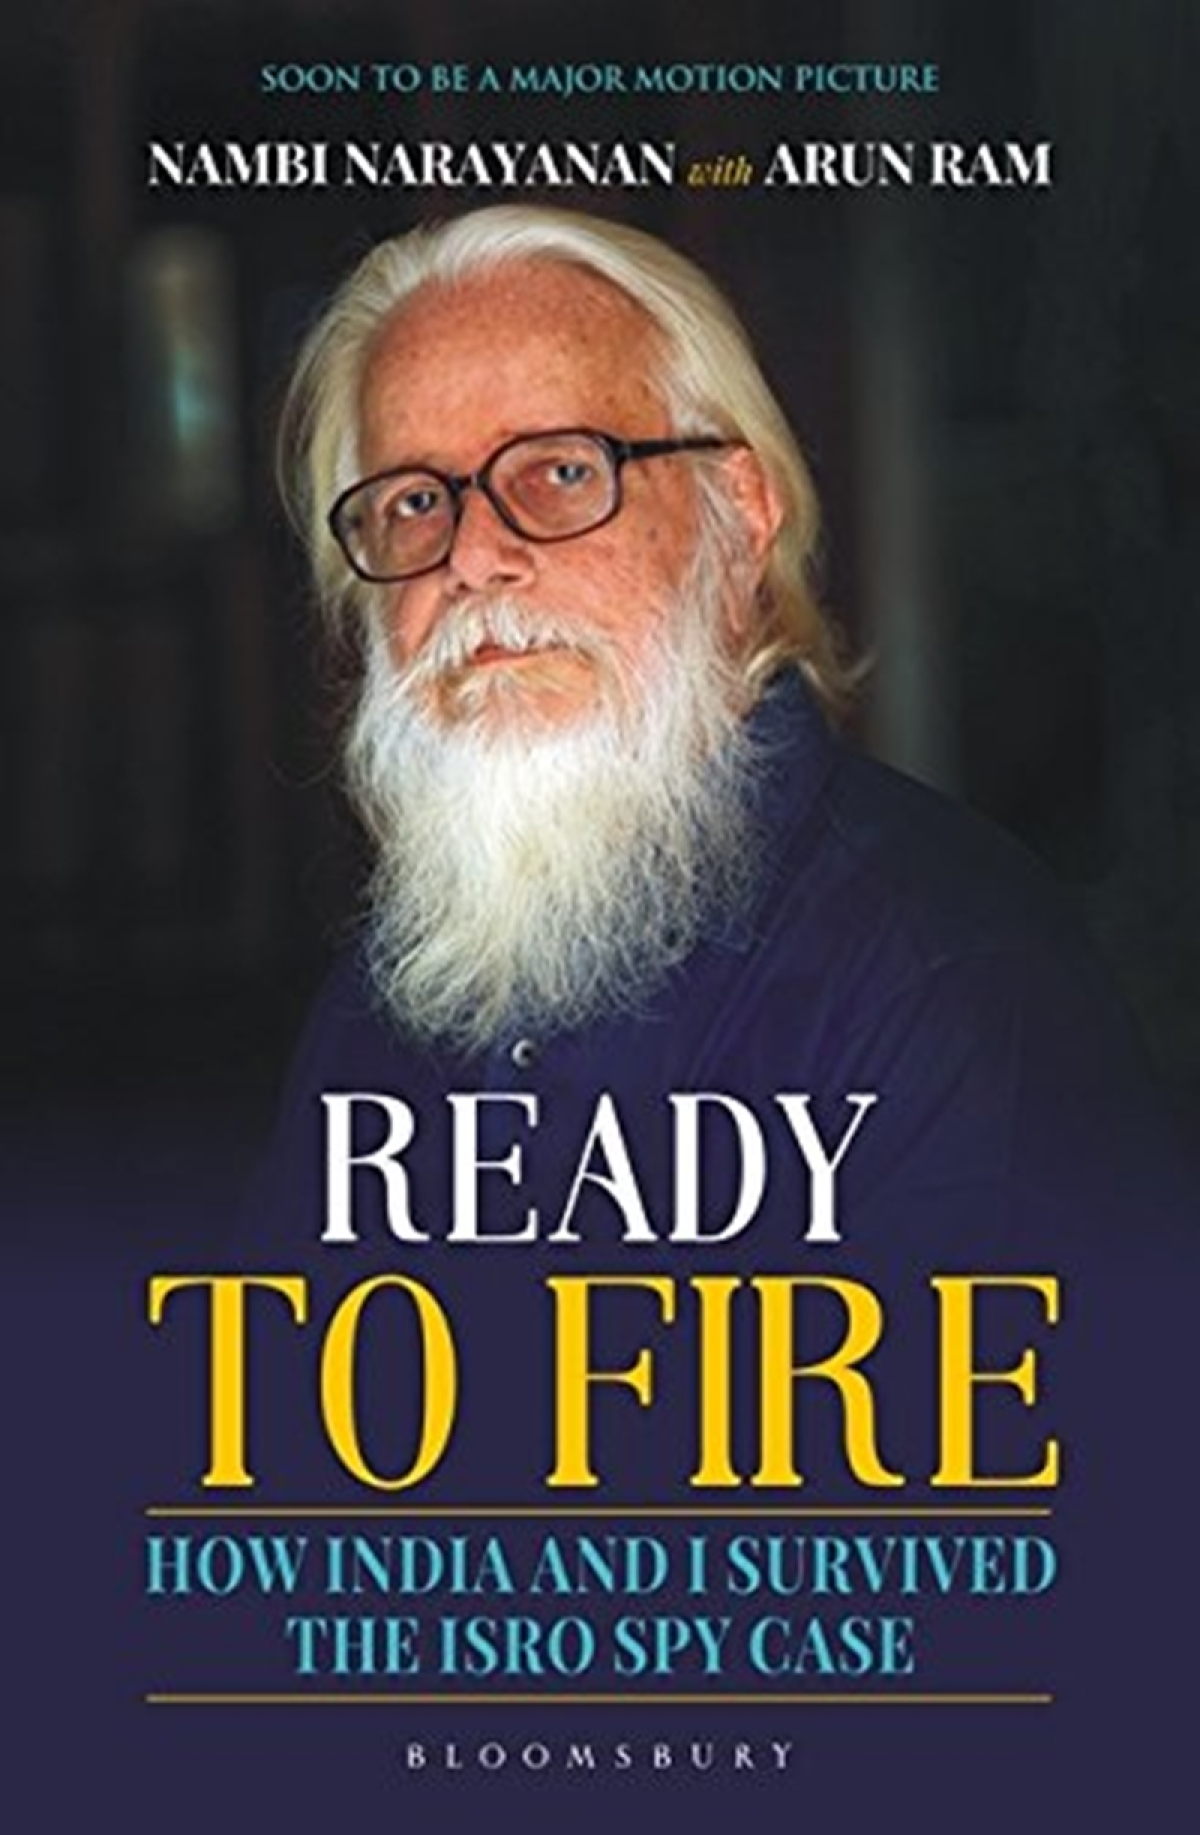 Ready to fire by Nambi Narayanan and Arun Ram: Review